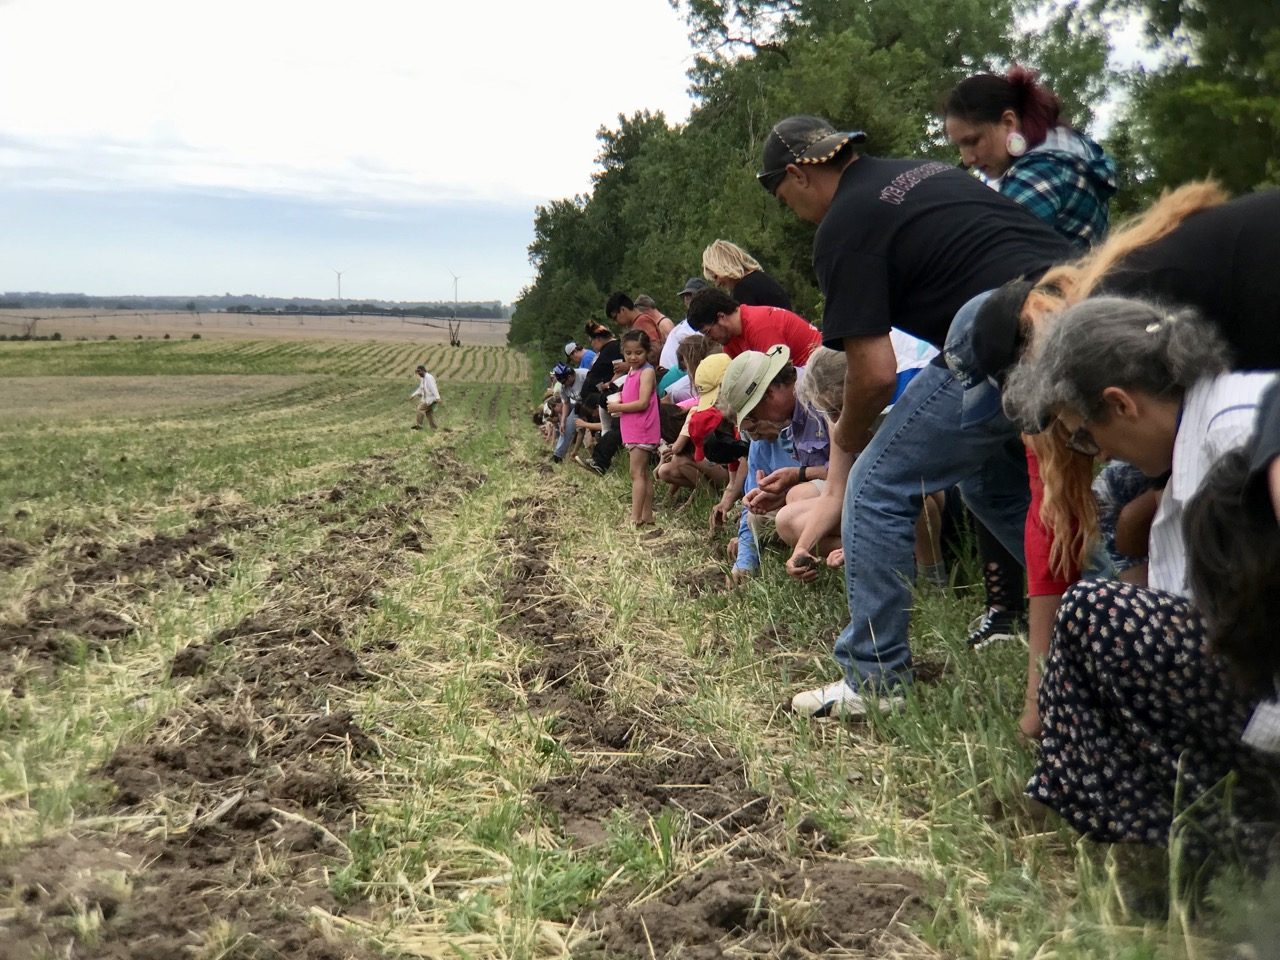 'Seeds of resistance': Ponca corn planted in path of Keystone XL Pipeline